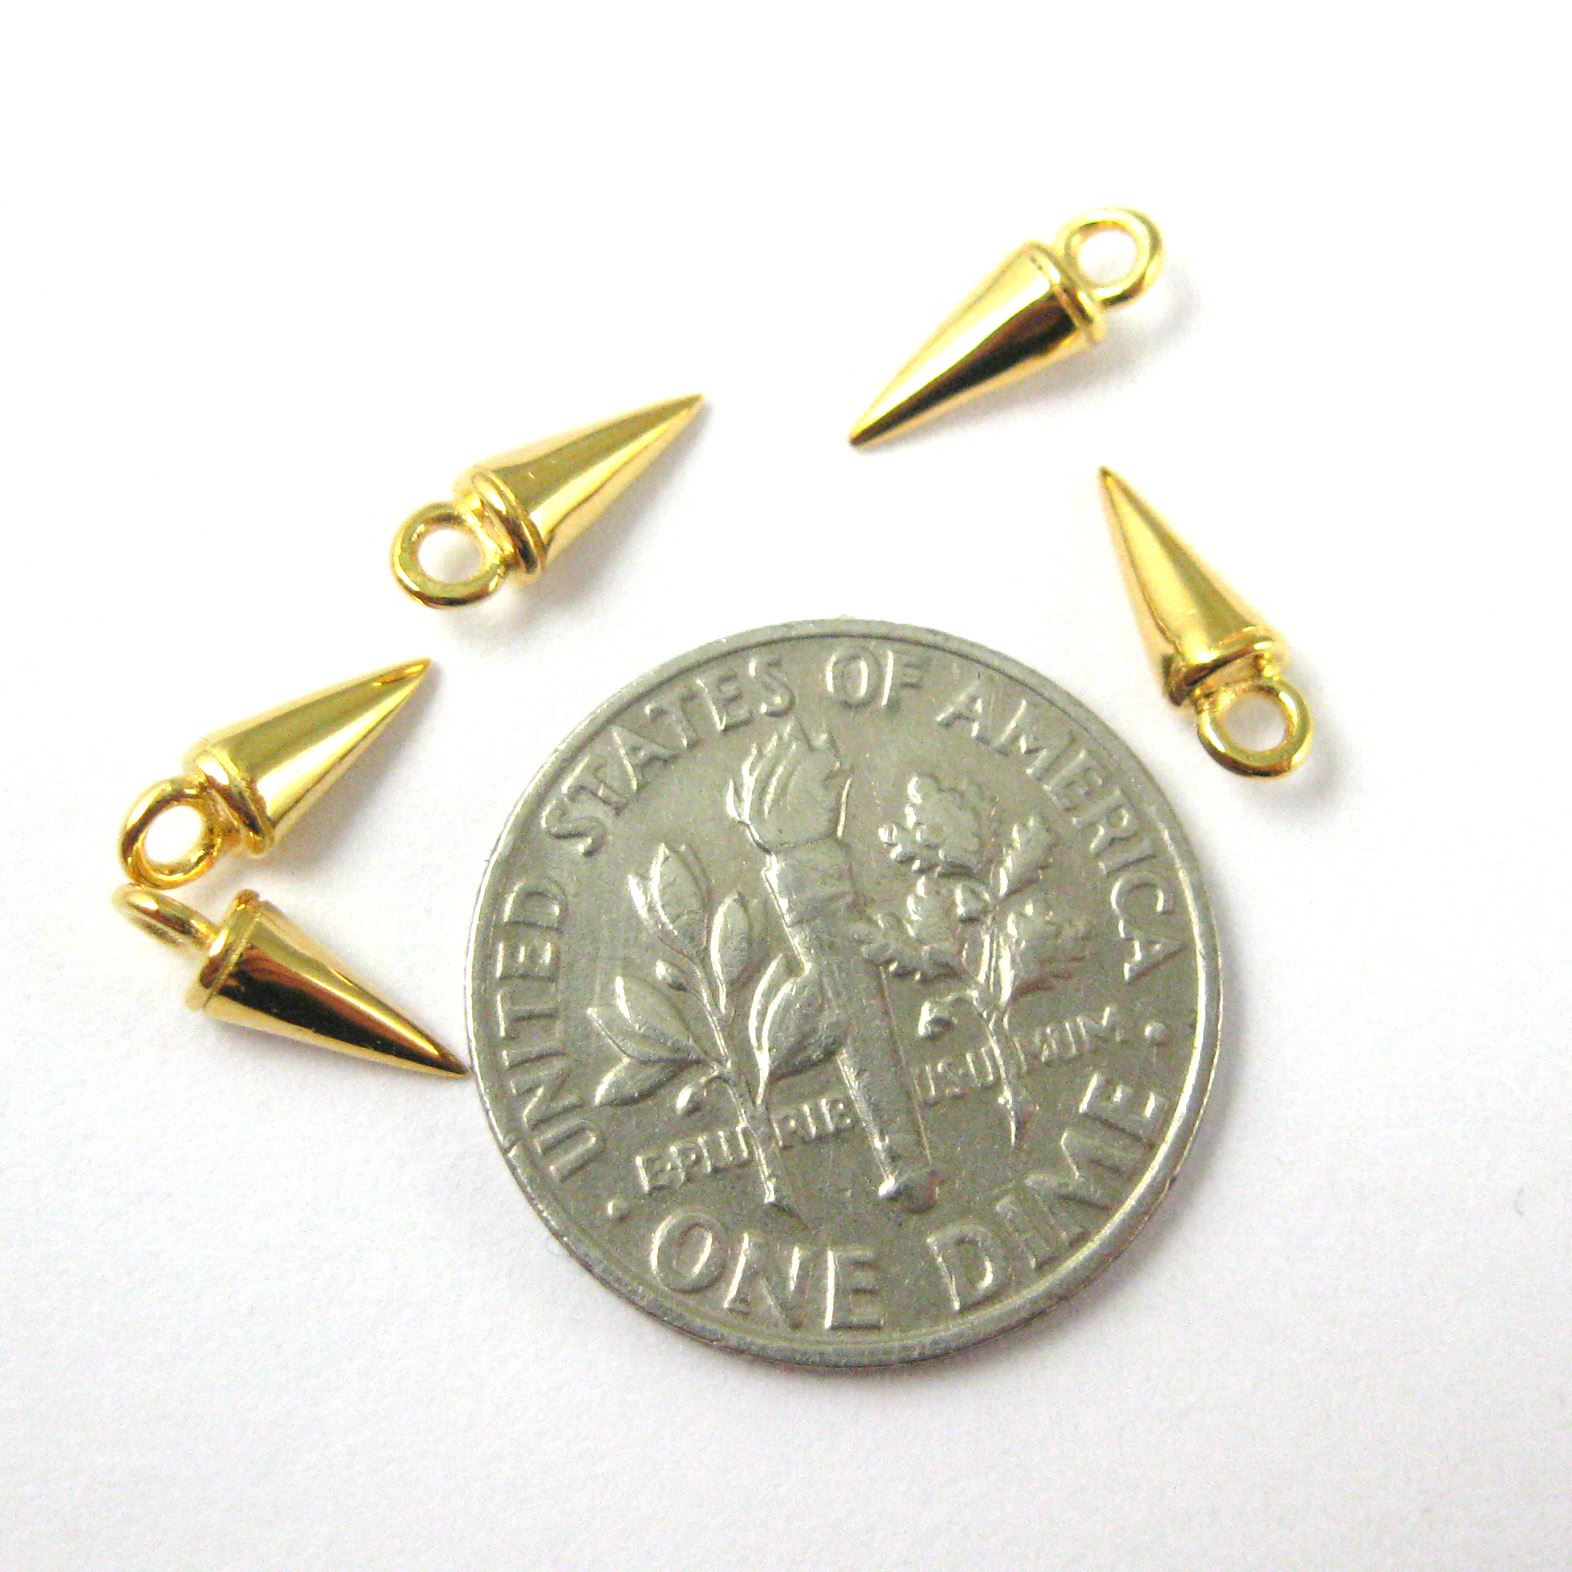 22K Gold plated Sterling Silver Charm - Spike Stud Charm - Cone Charm - Jewelry Stud - Jewelry Making Charm - Findings( 8mm-5 pcs)